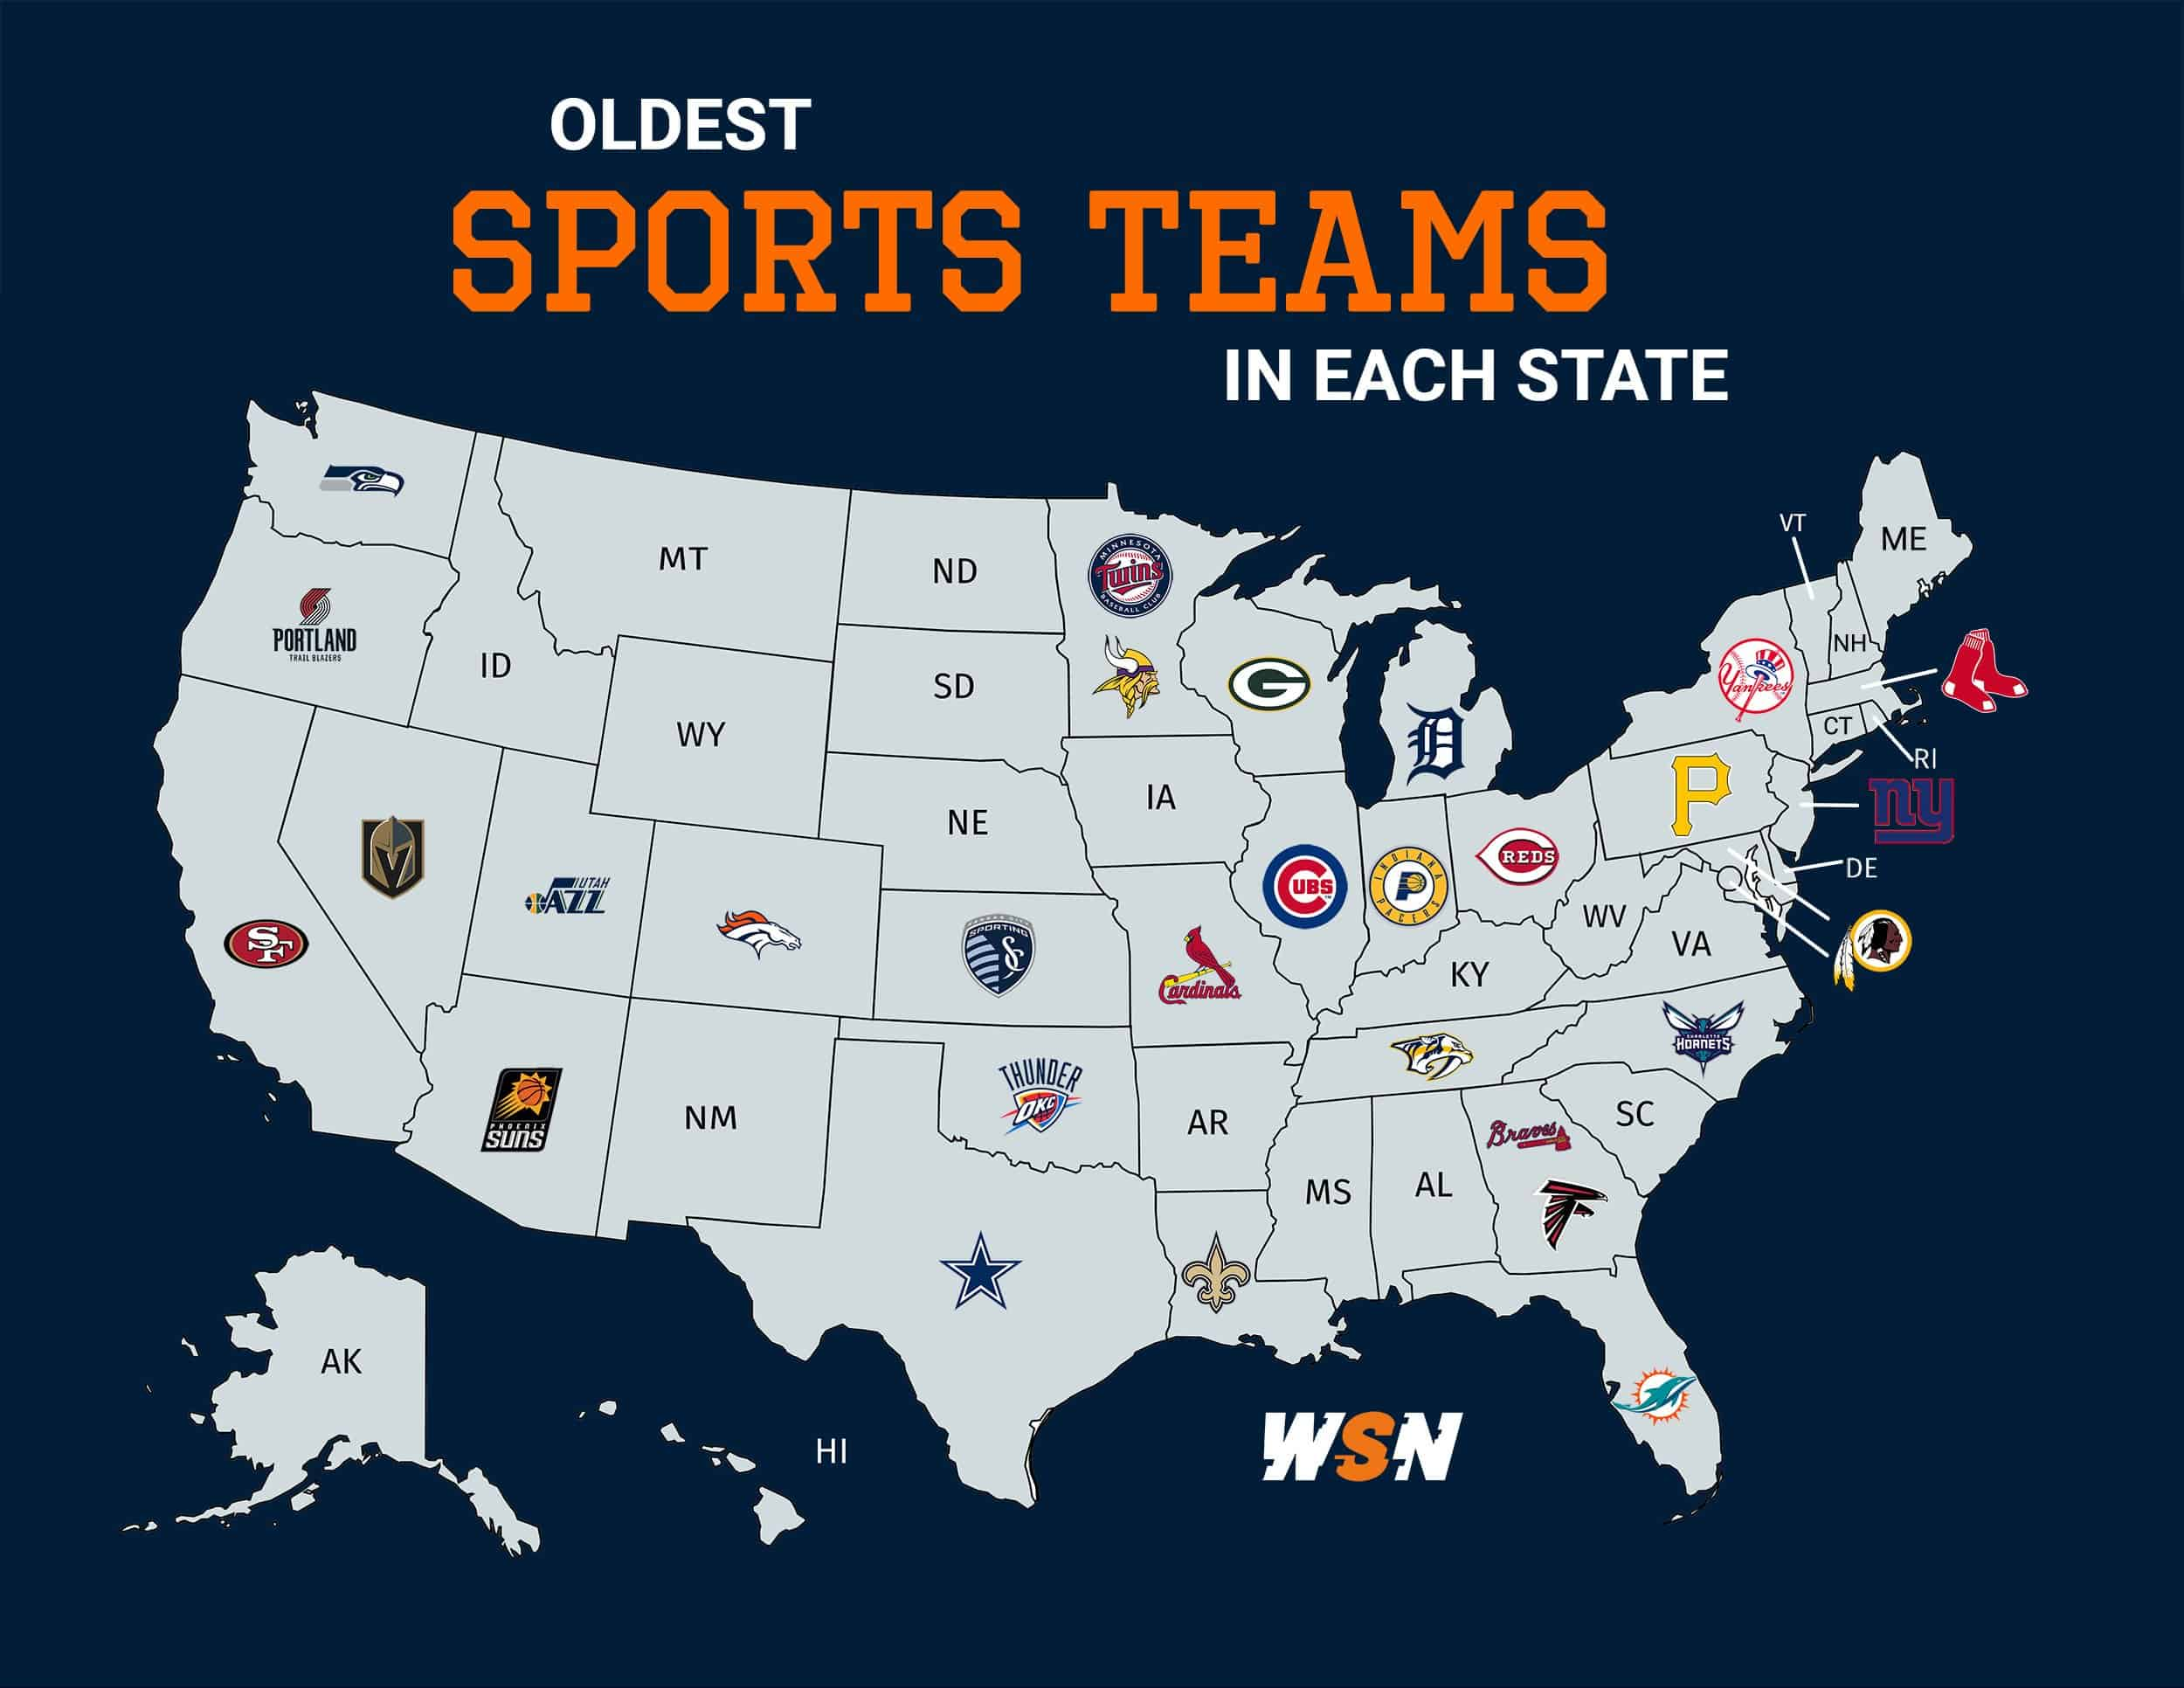 Oldest Sports Teams in the US - State by State